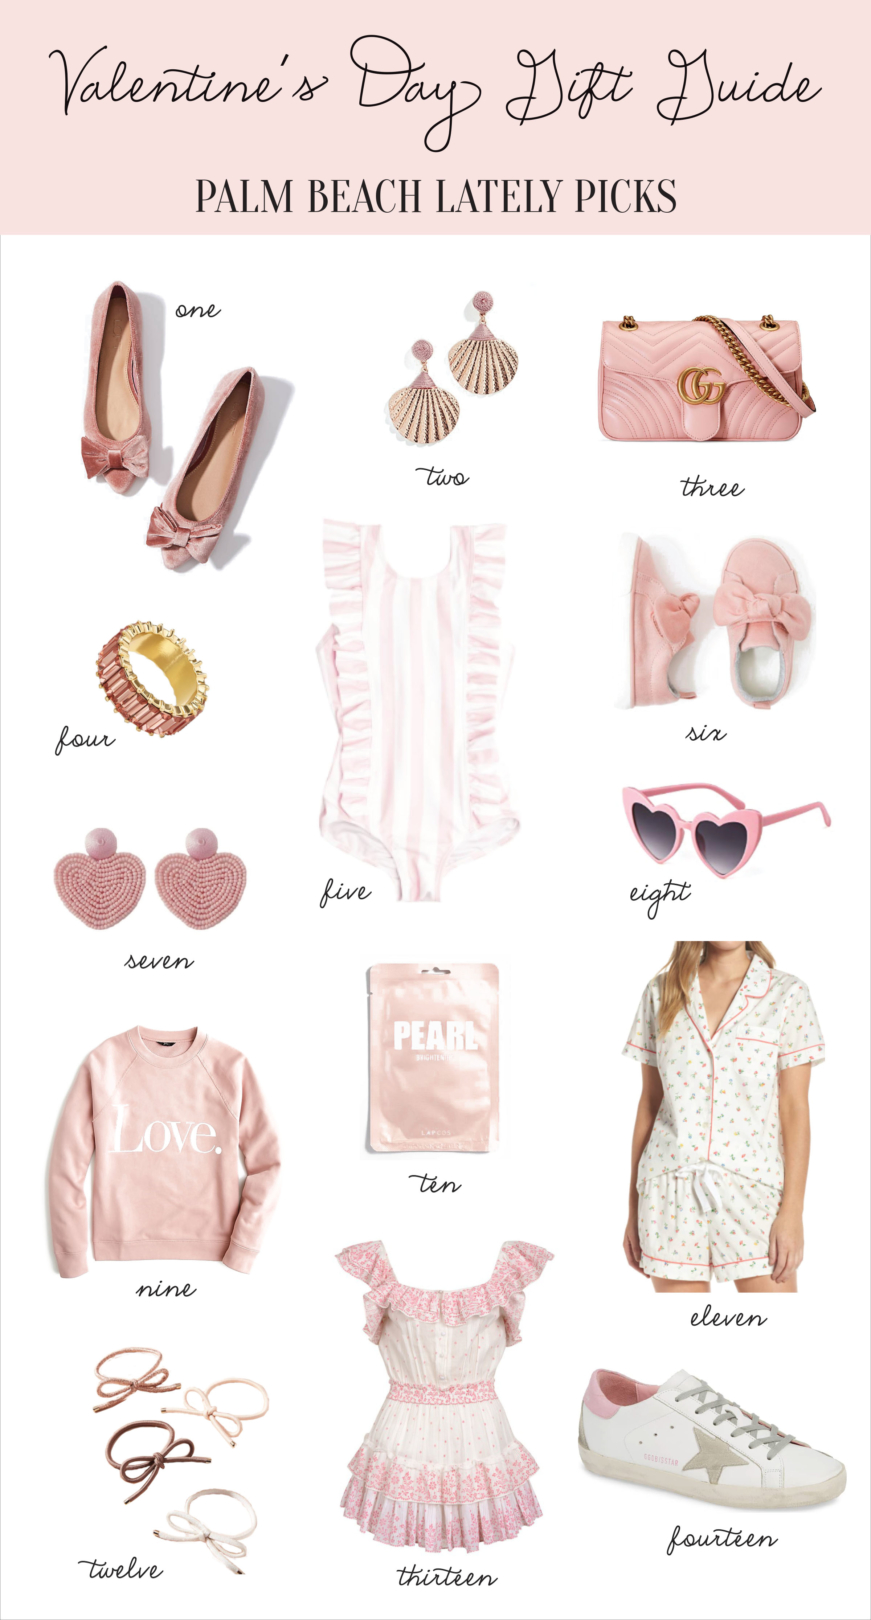 Palm Beach Lately's Gift Guide